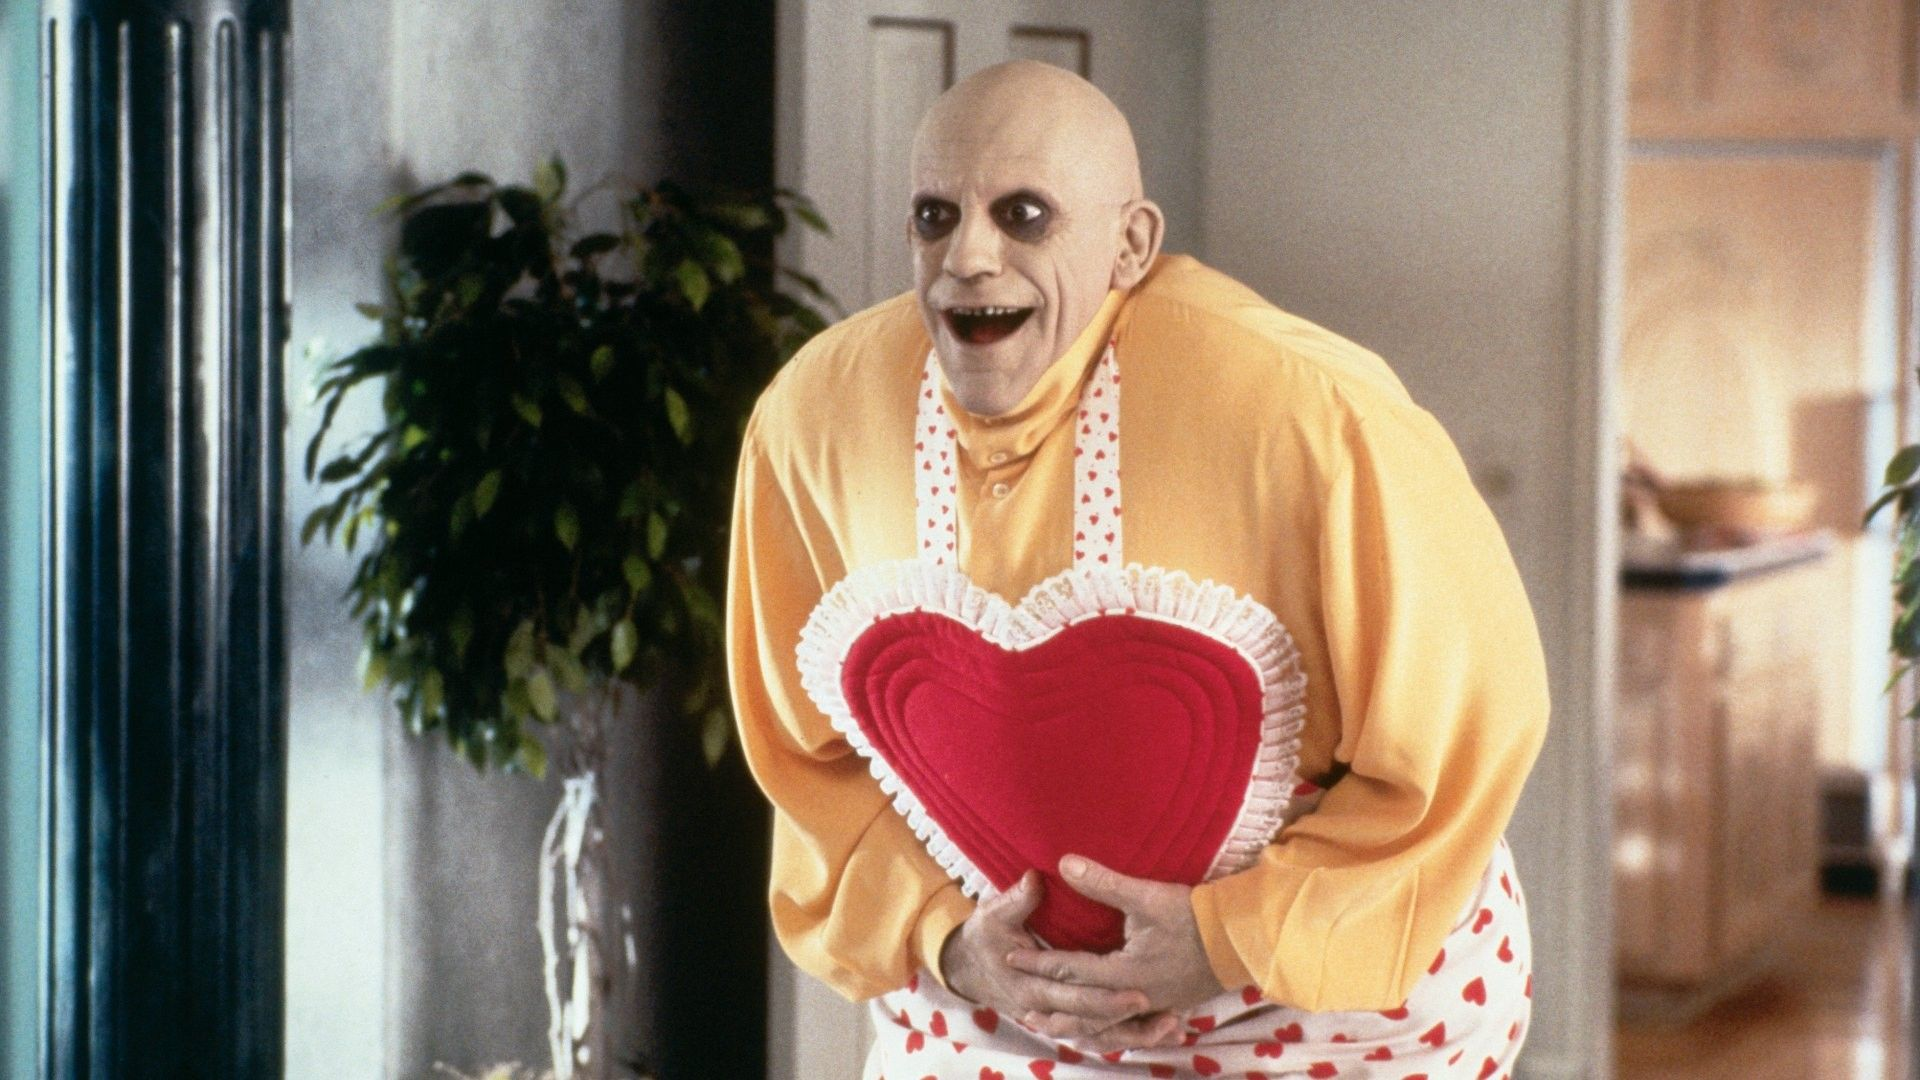 B 2 30 Creepy and Kooky Facts About Addams Family Values